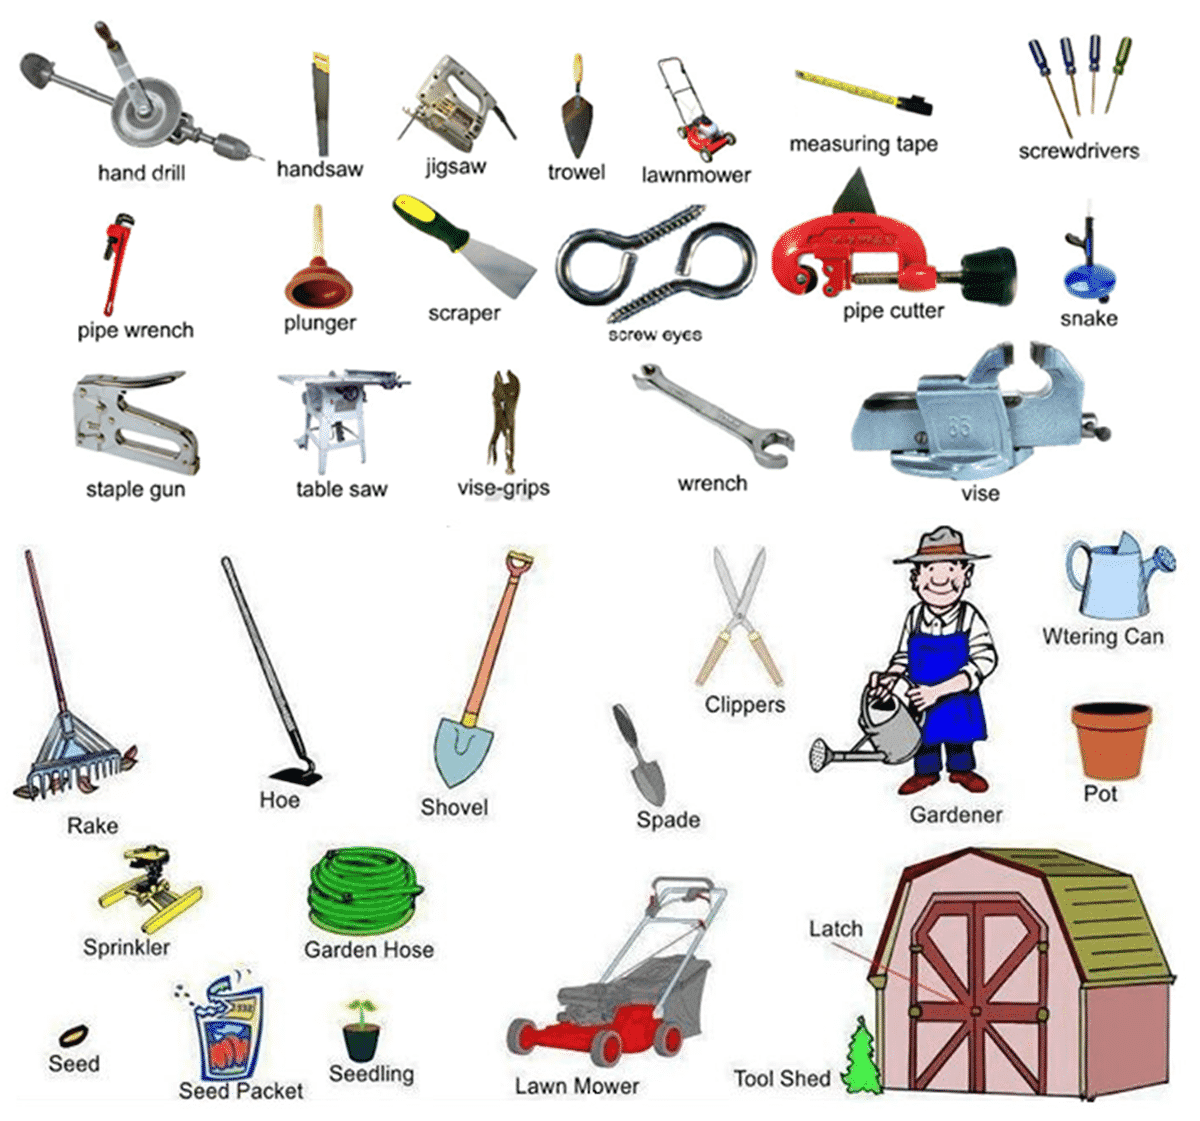 Tools, Equipment, Devices and Home Appliances Vocabulary: 300+ Items Illustrated 1